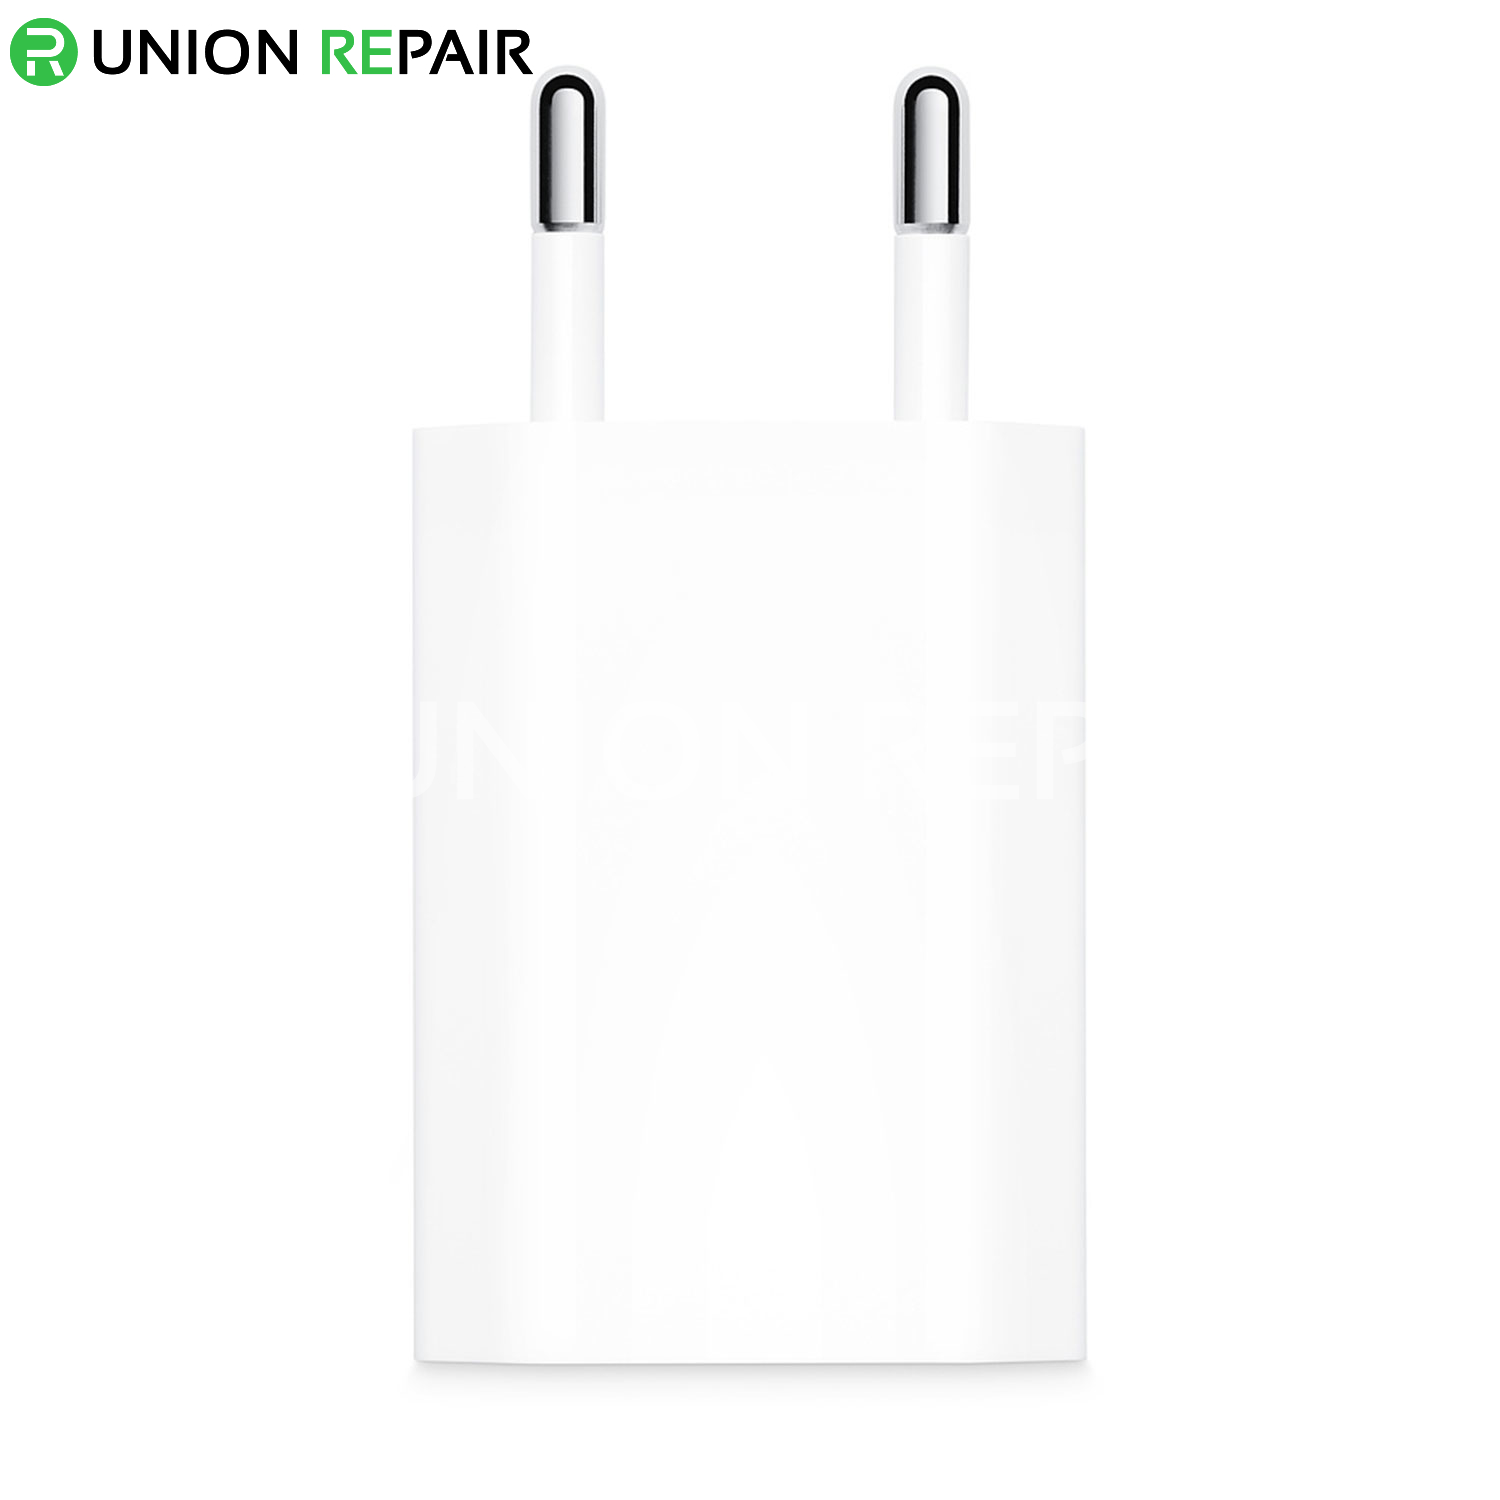 For iPhone 5W USB Power Adapter - EU Version